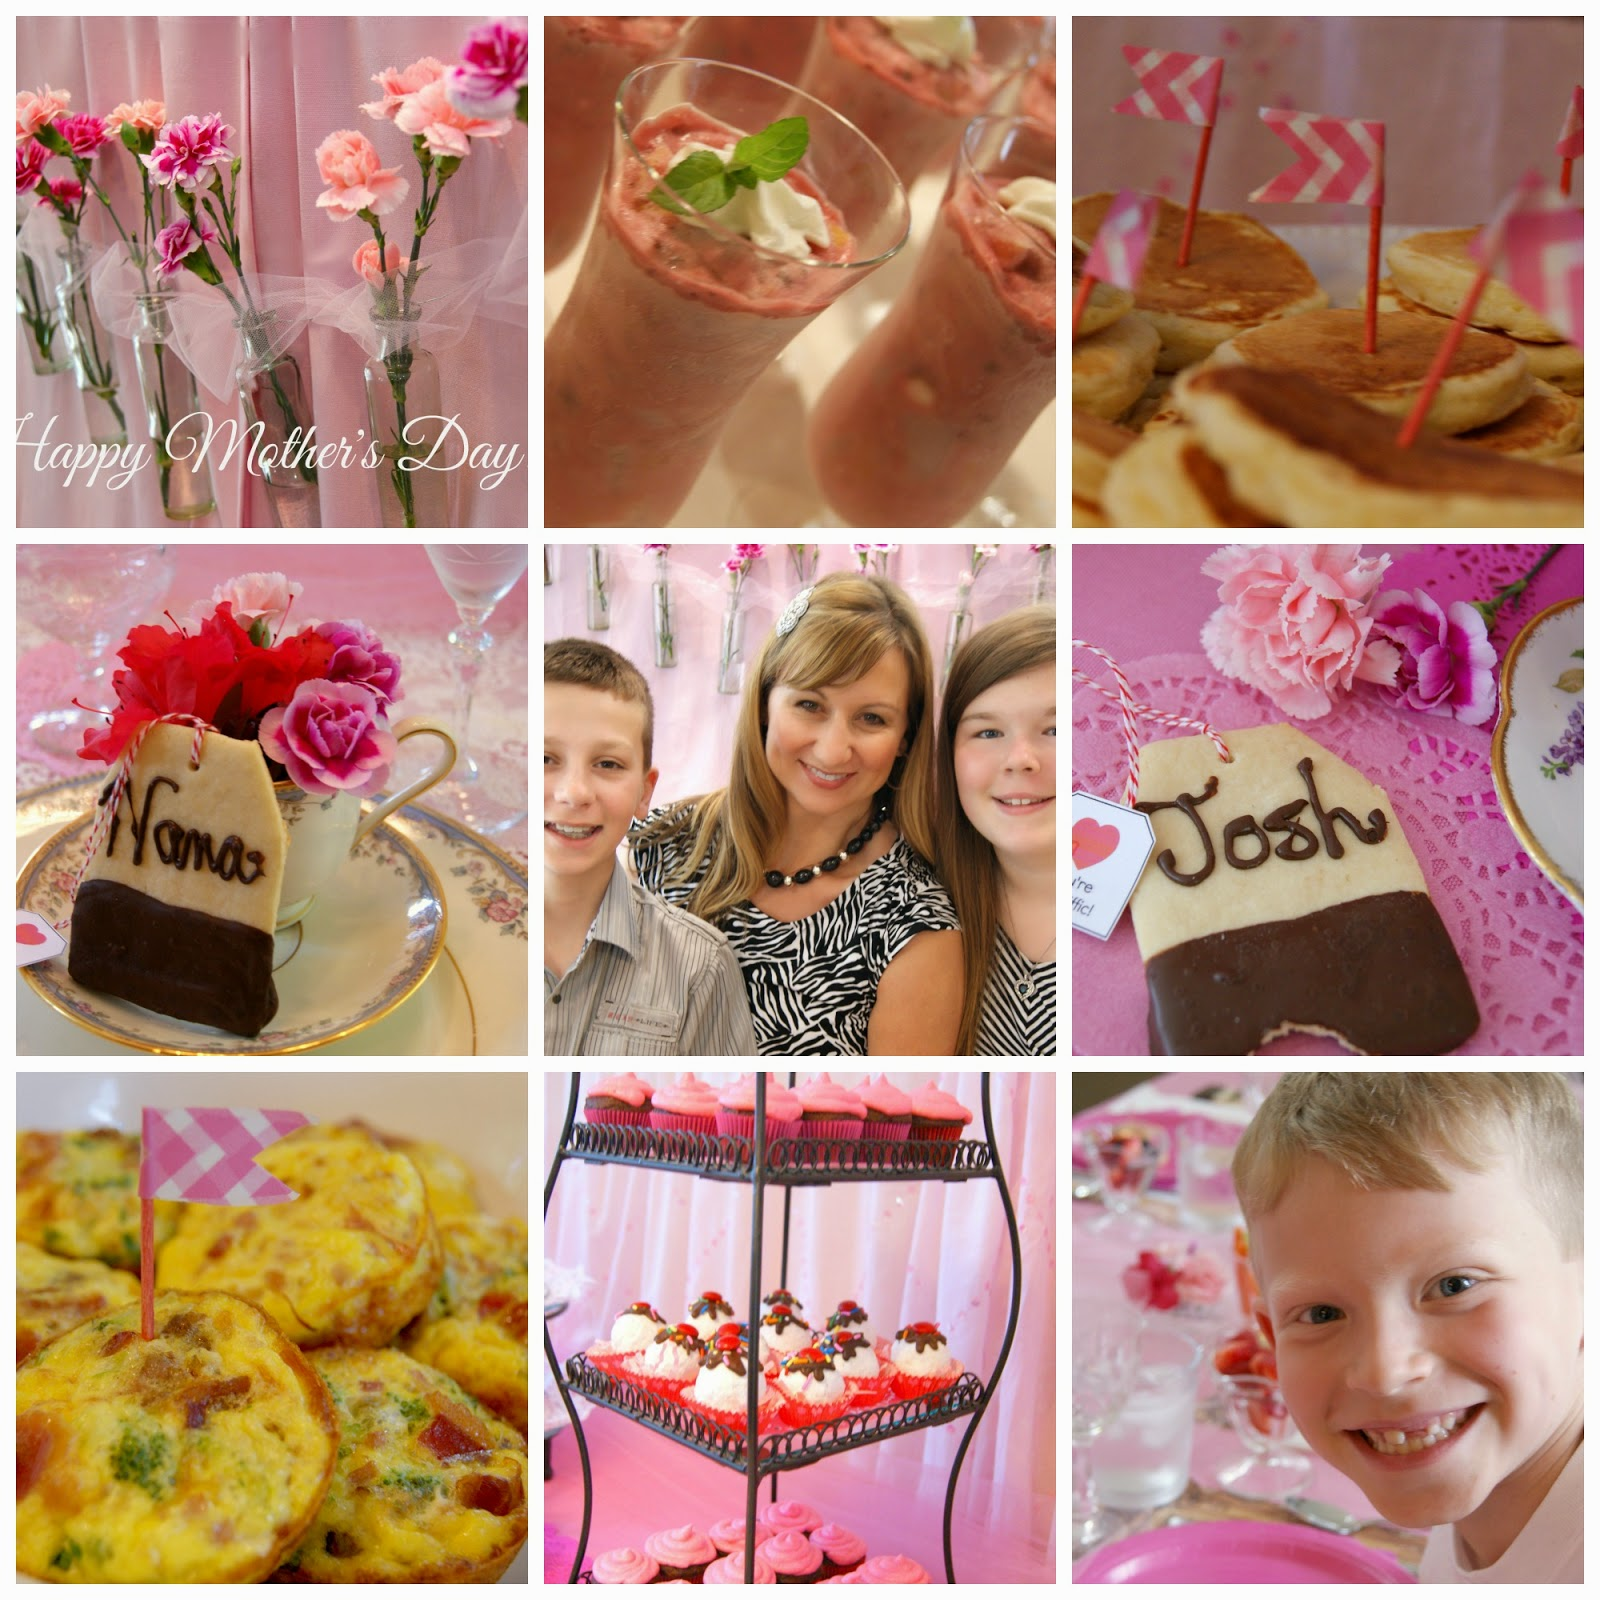 Mother's Day Tea Party Brunch Ideas @michellepaigeblogs.com